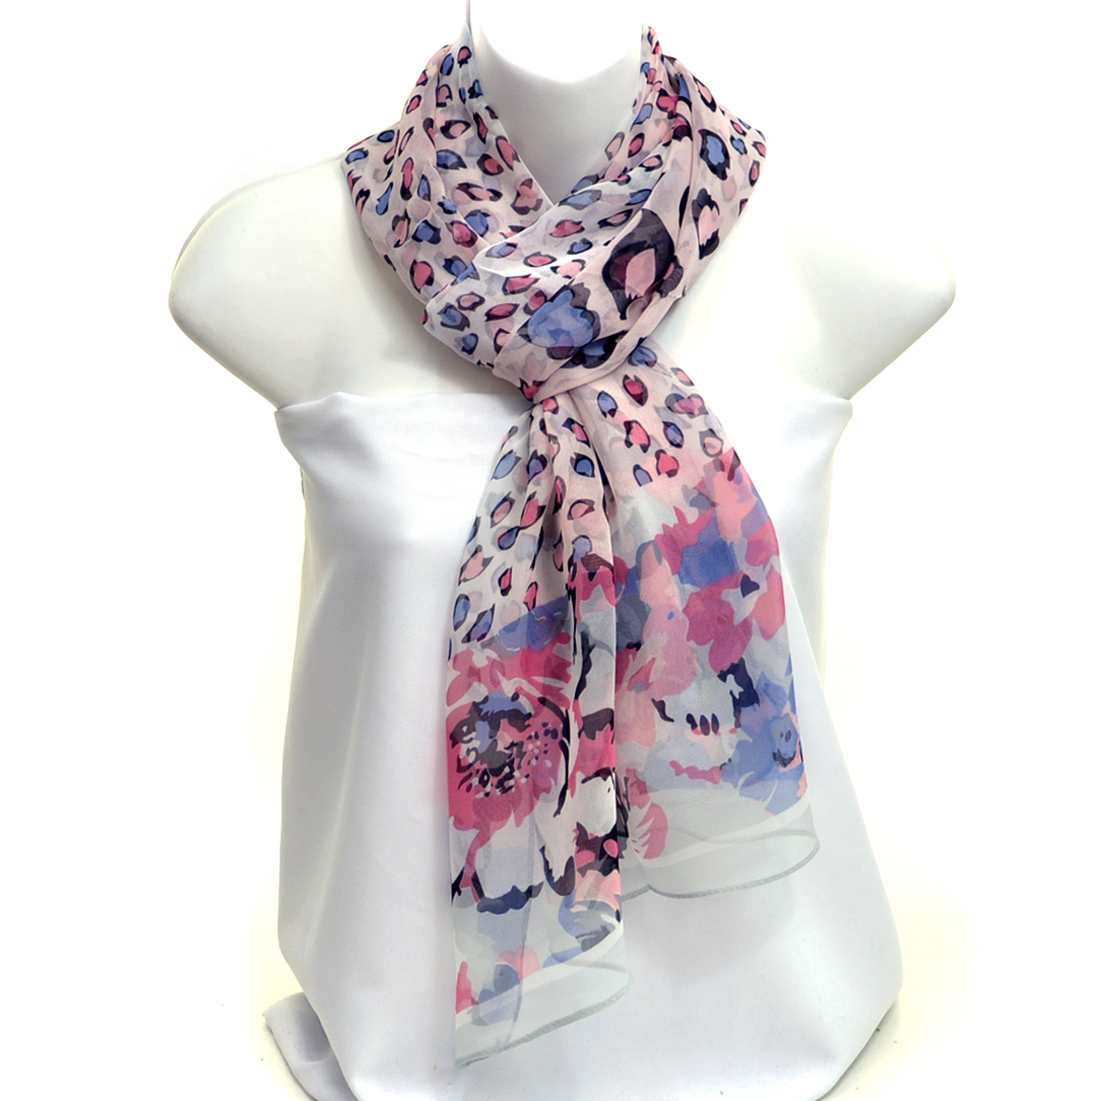 Leopard Floral Print Light Weight Scarf